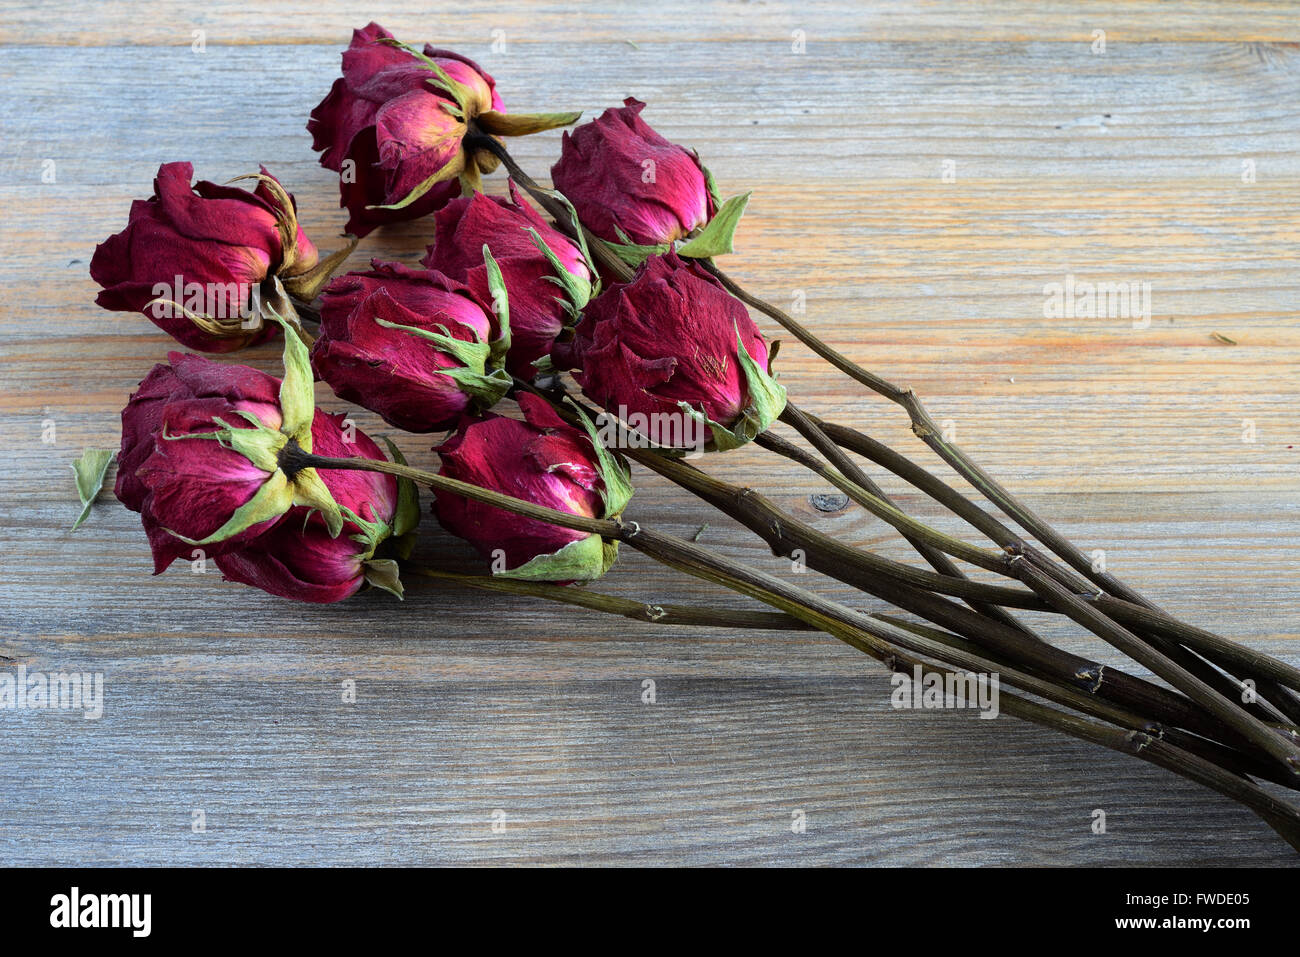 bouquet of withered roses on a wooden background - Stock Image